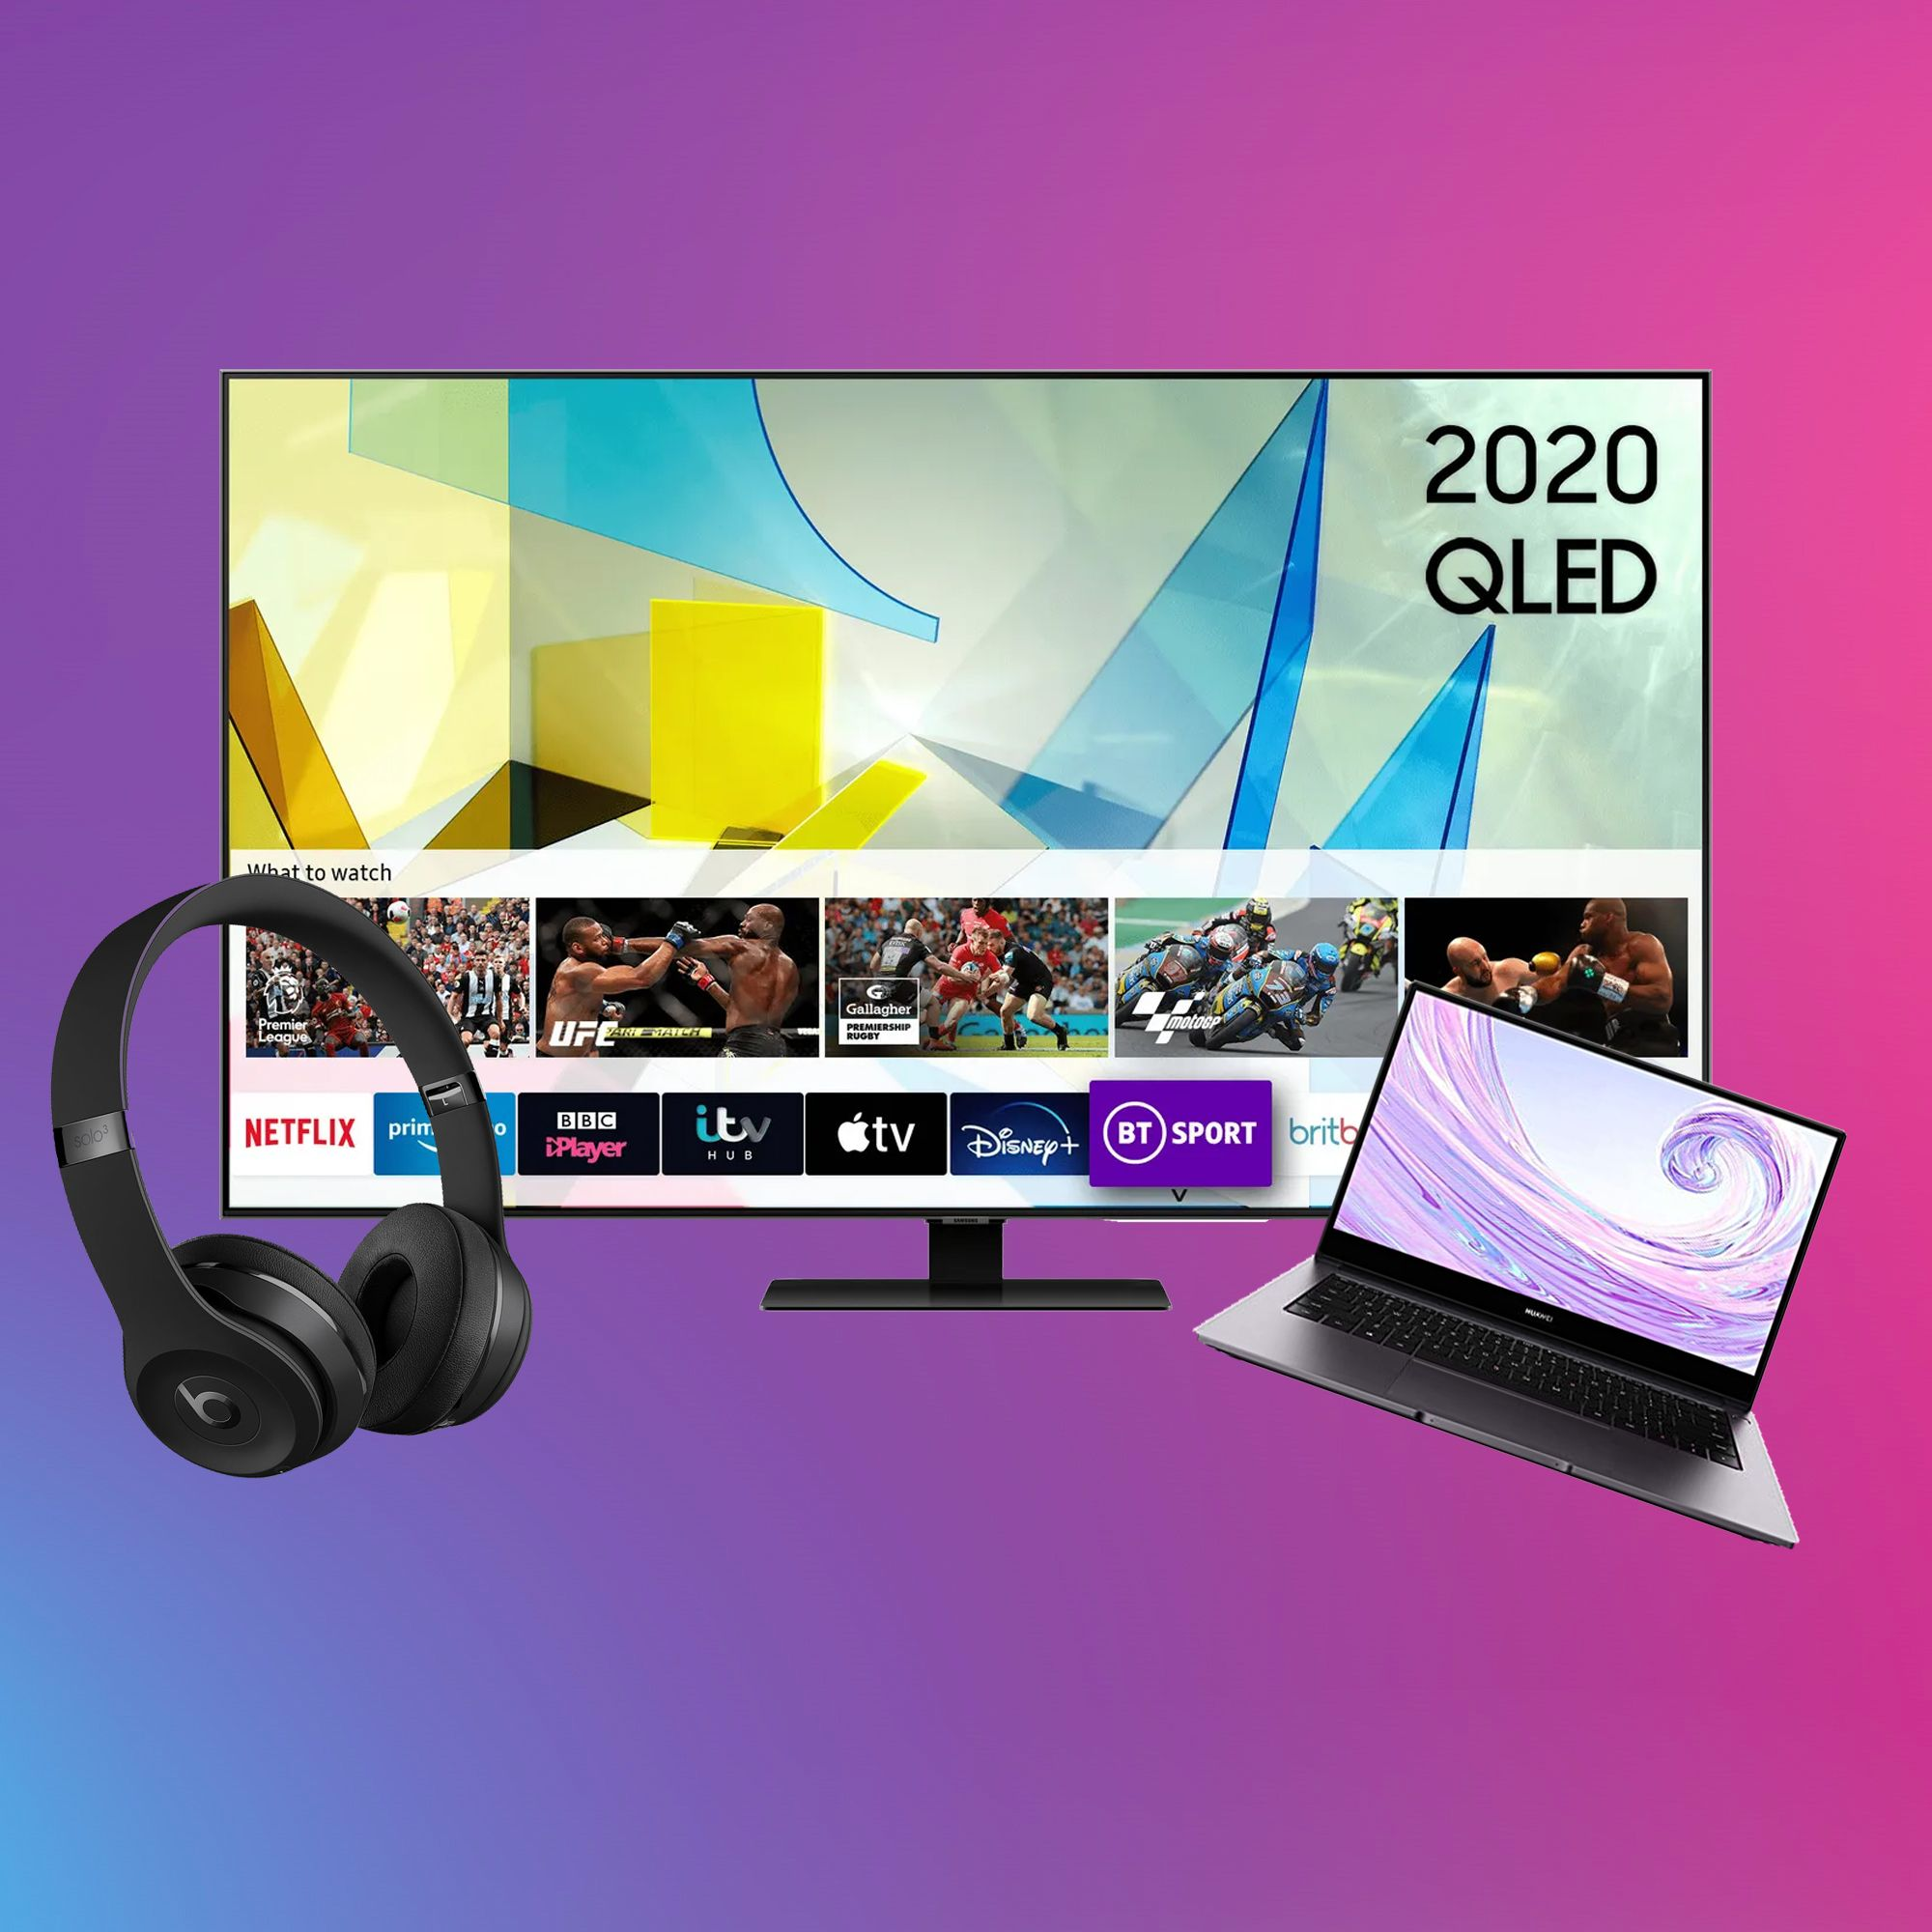 Black Friday Deals 4k Tv Headphones And Laptop Offers From Ao